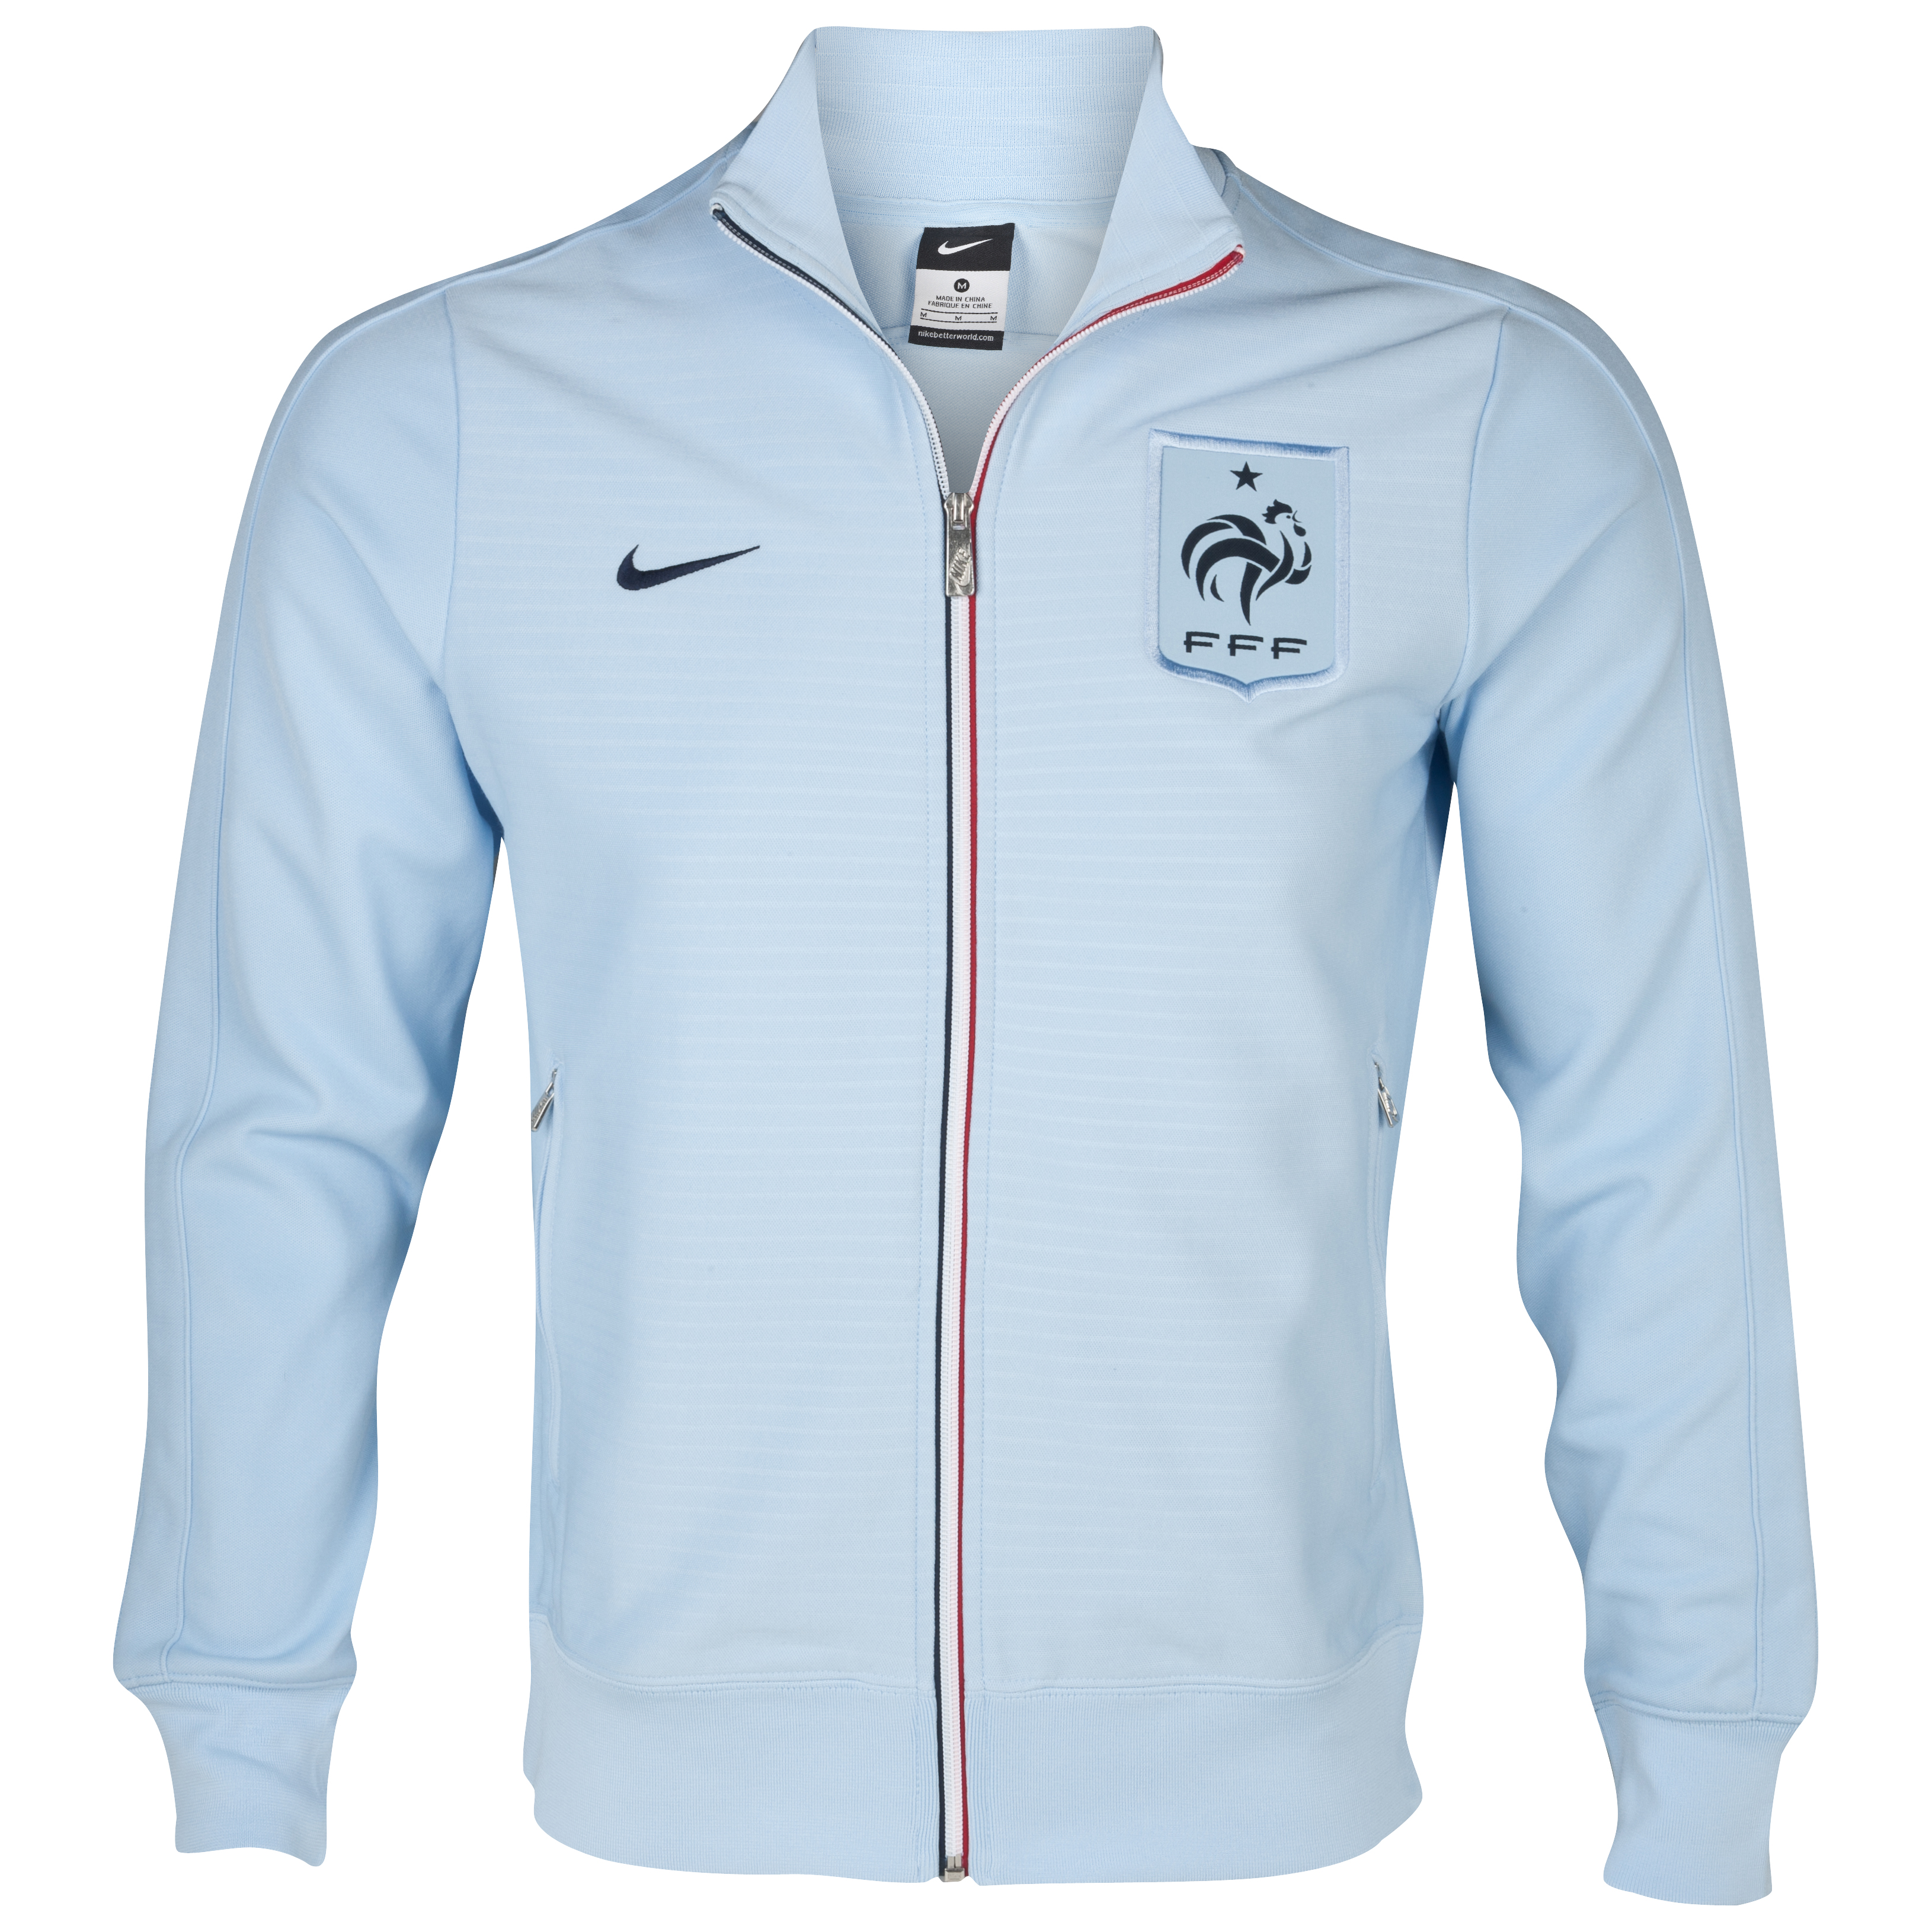 France Authentic N98 Track Jacket - Ice Blue/Ice Blue/Obsidian